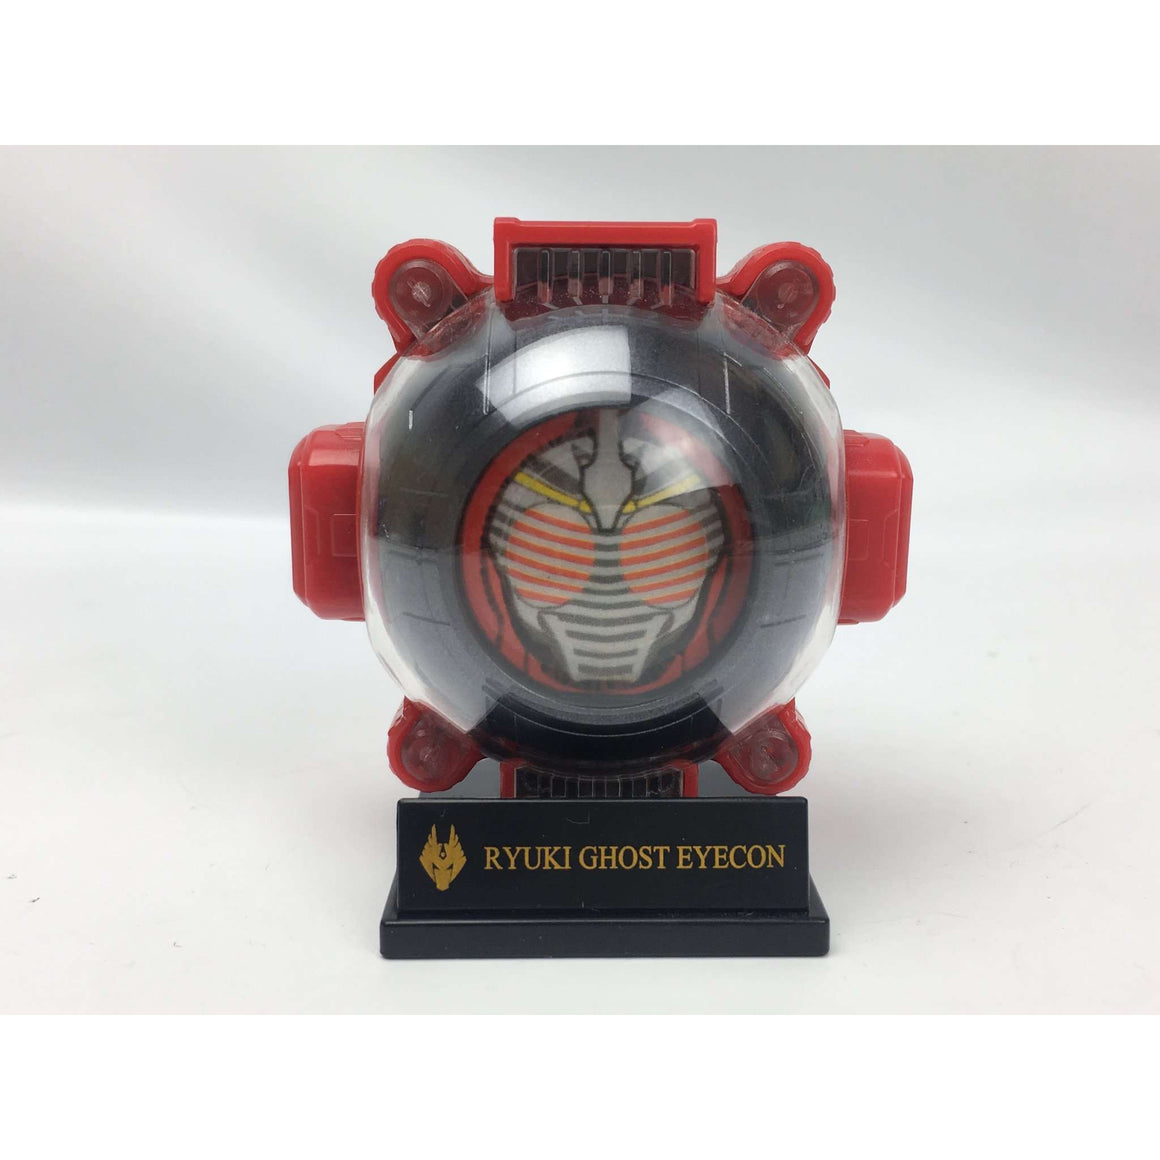 CSTOYS INTERNATIONAL:[LOOSE] Kamen Rider Ghost: Ryuki Ghost Eyecon